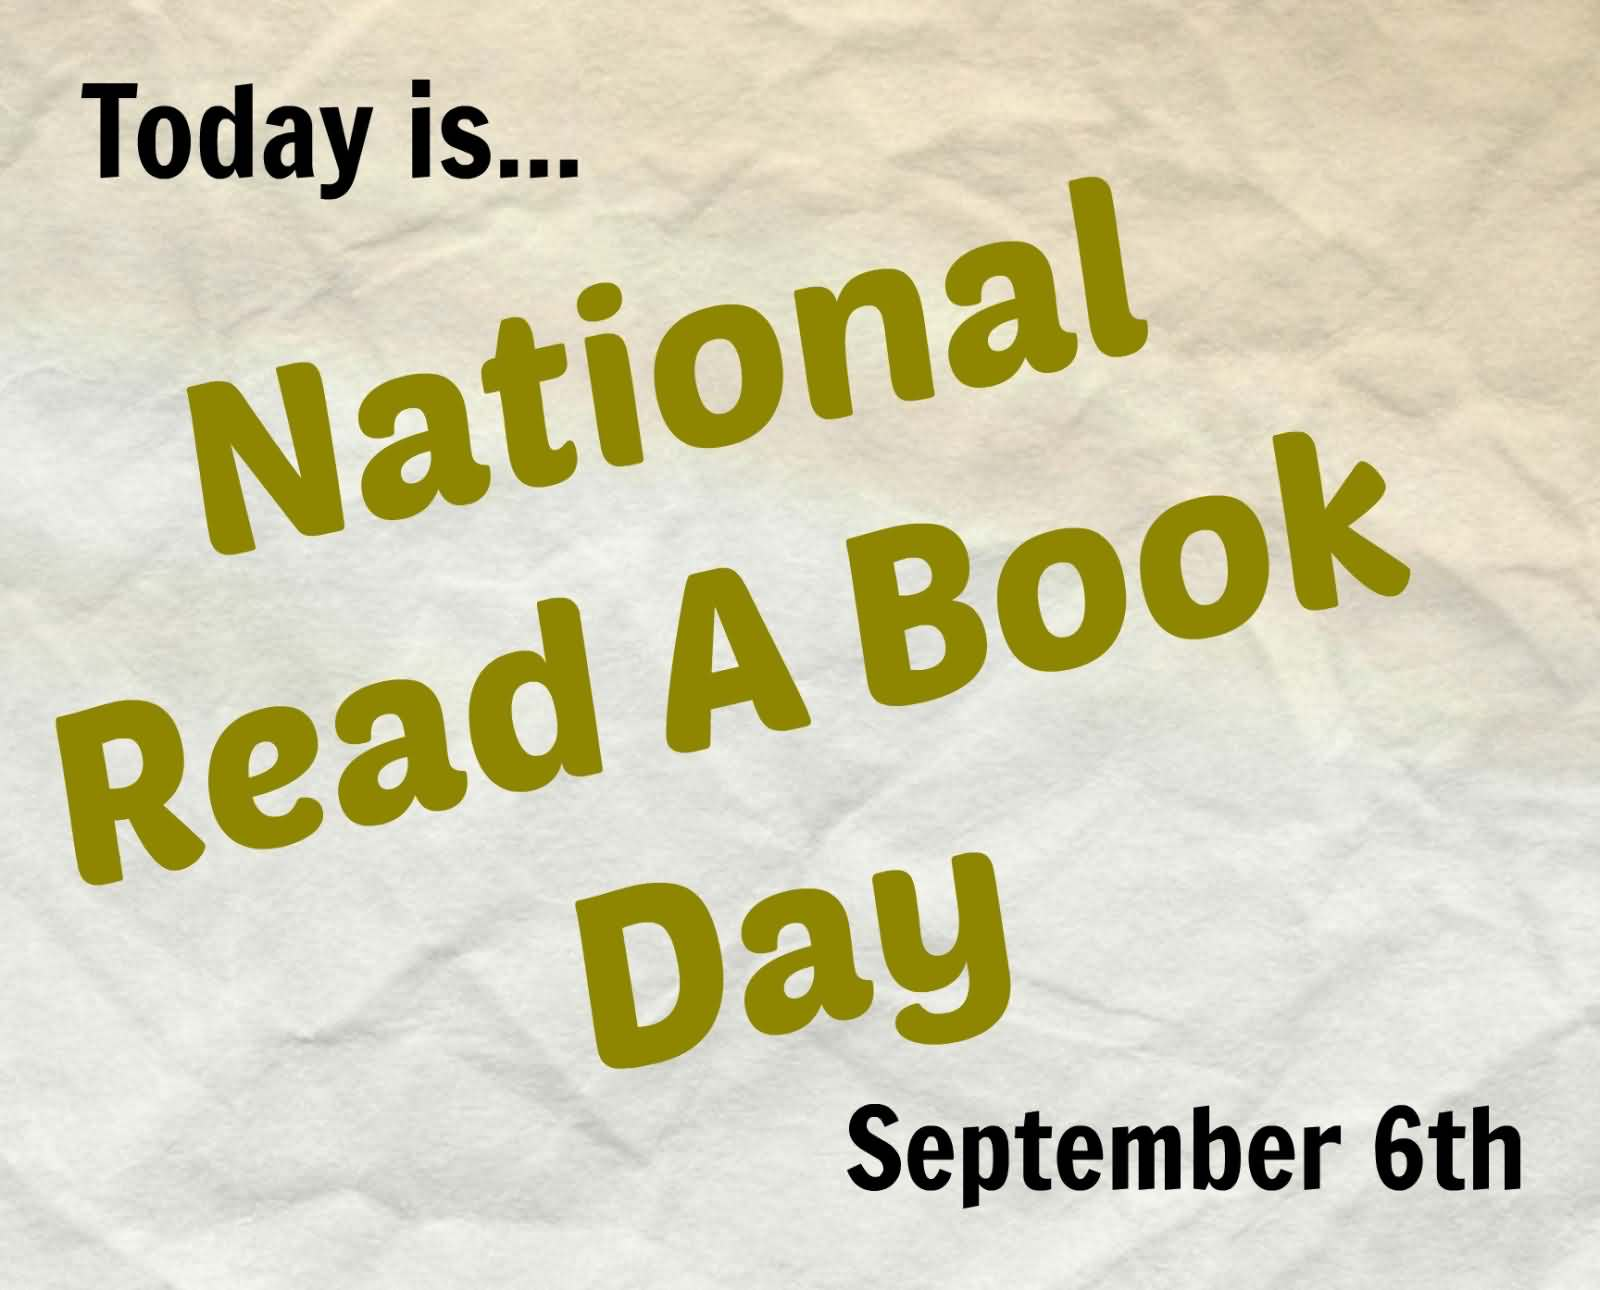 Today Is National Read a Book Day September 6th